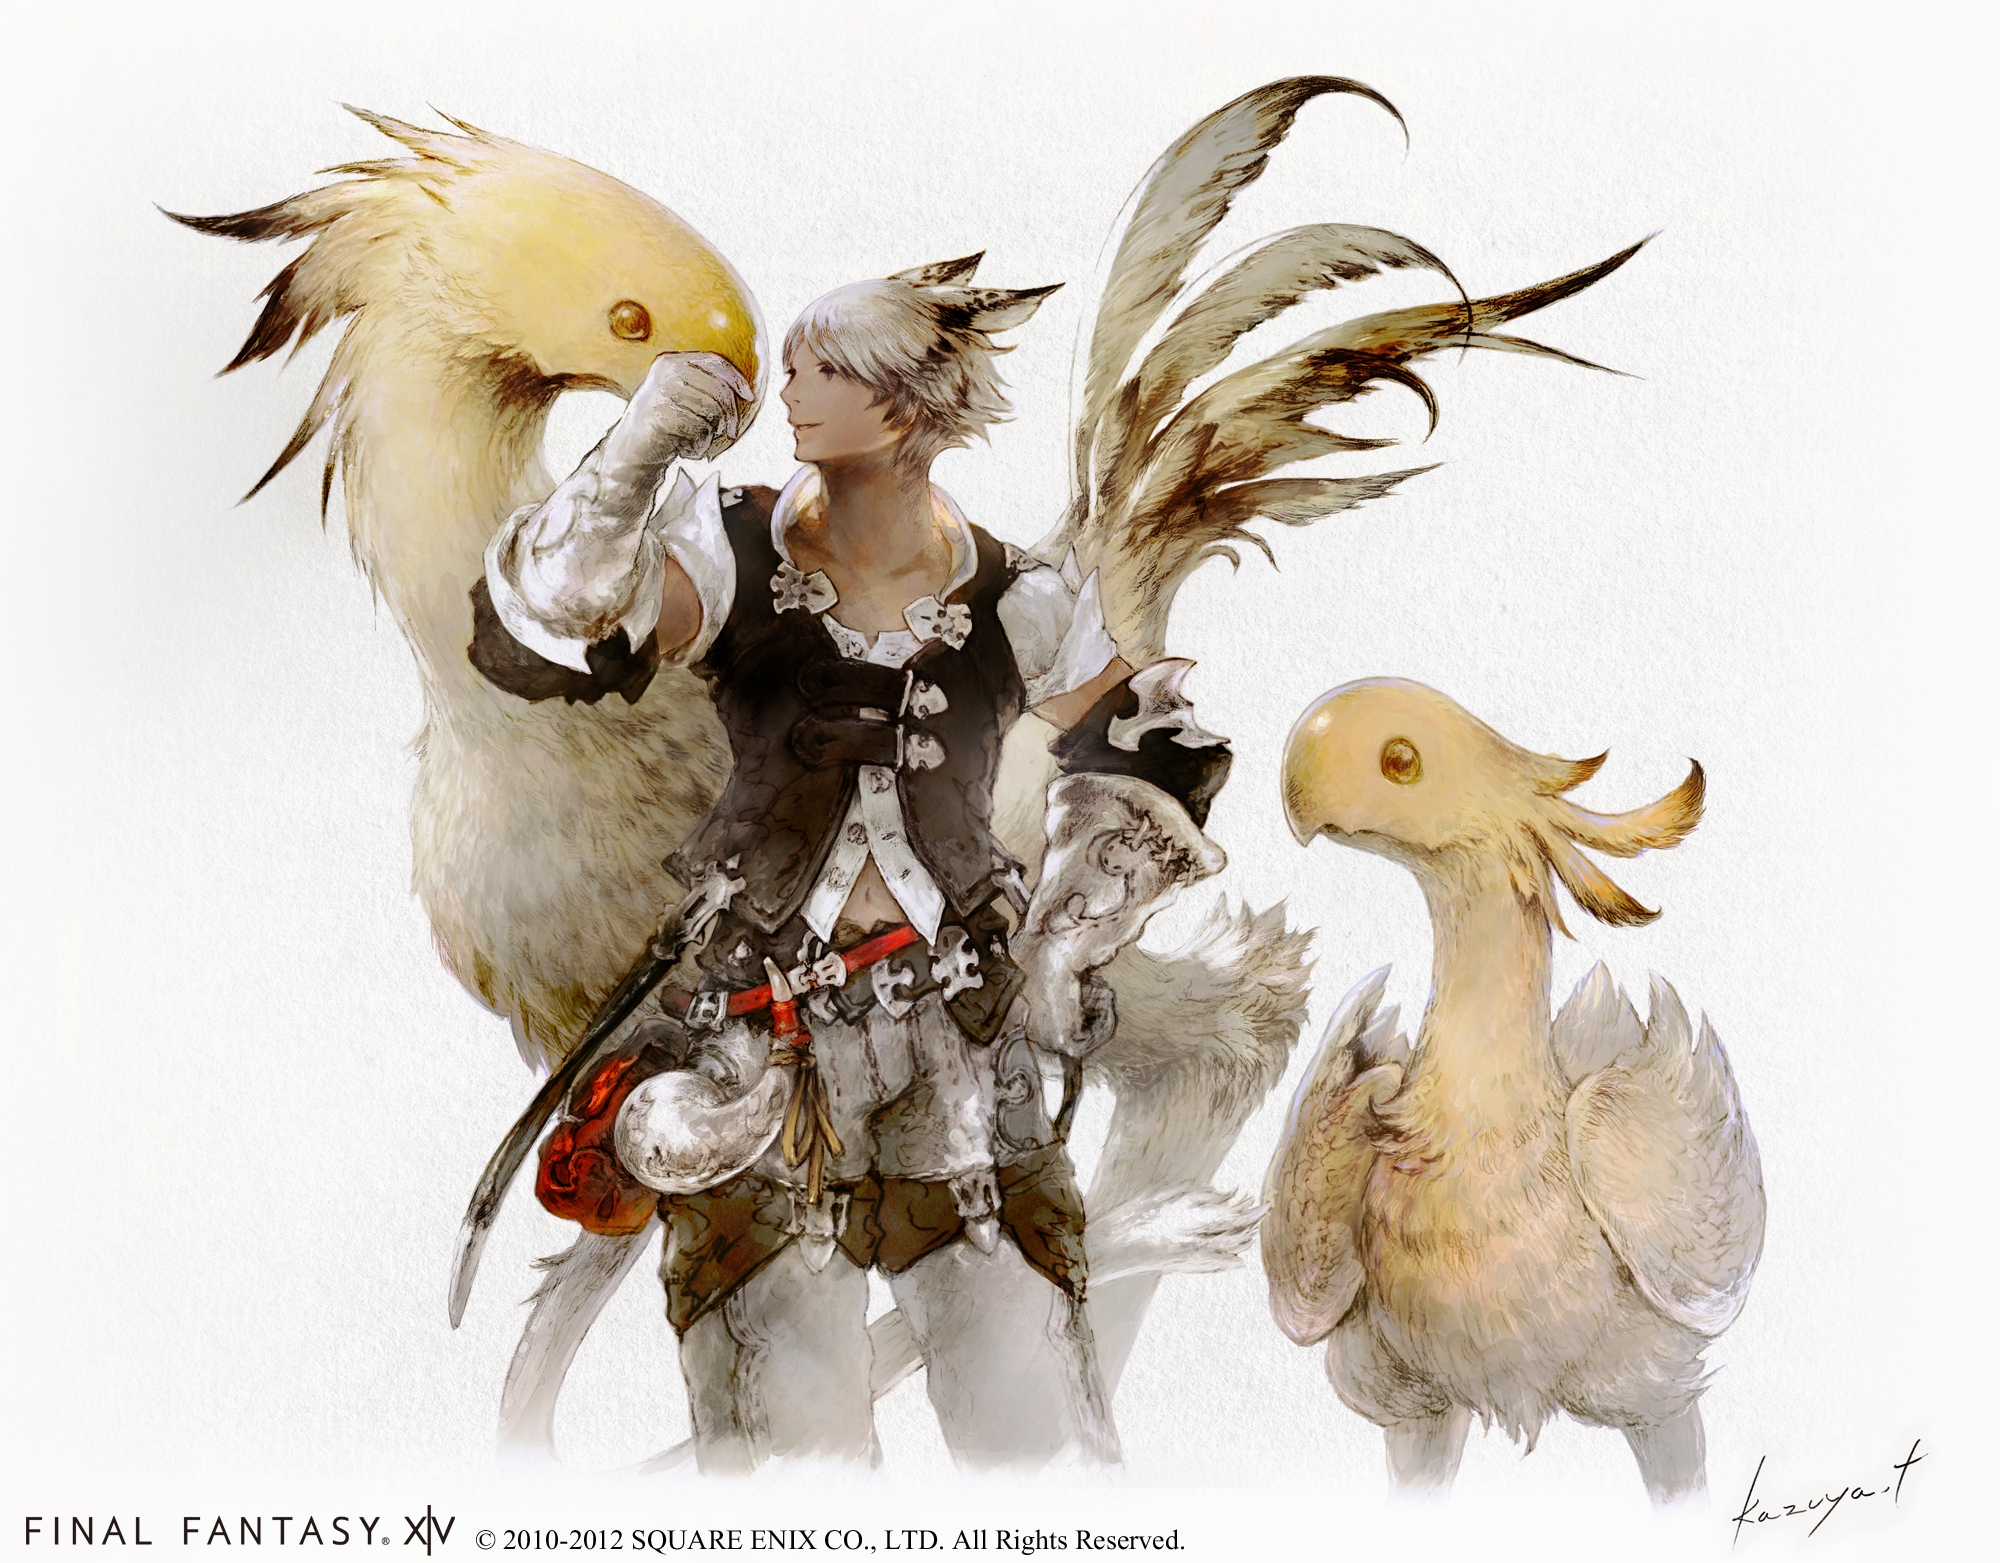 final fantasy xiv 2 0 character classes introduced and new artwork